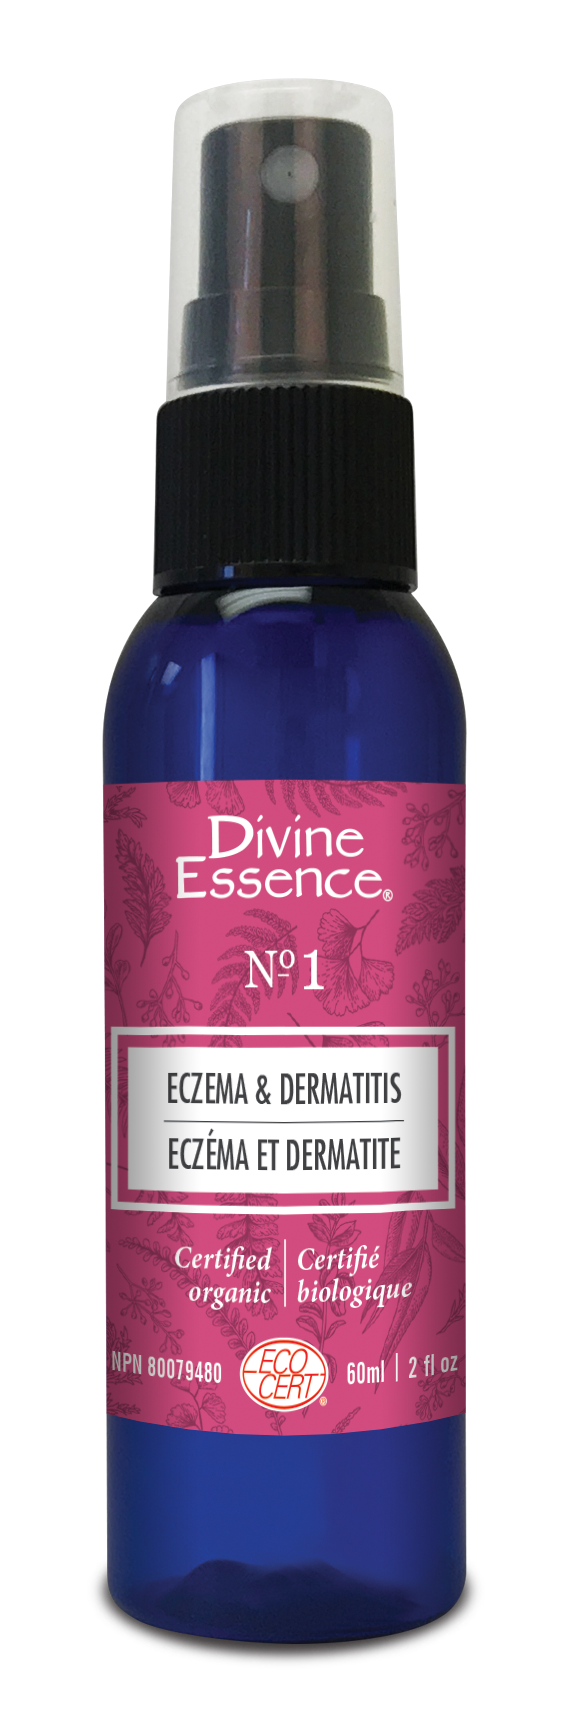 Eczema & Dermatitis 60ml